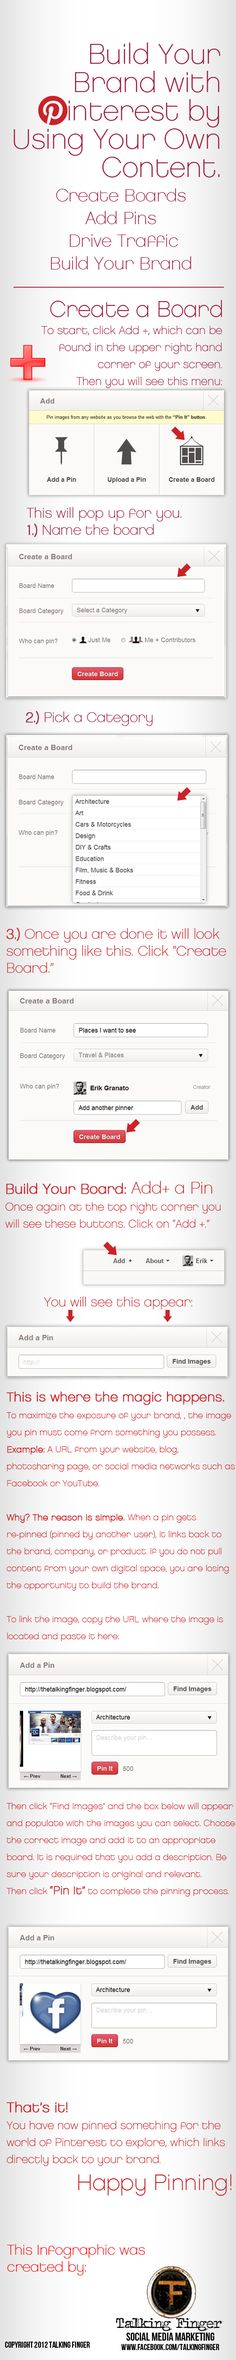 How to maximize your Pins on Pinterest!